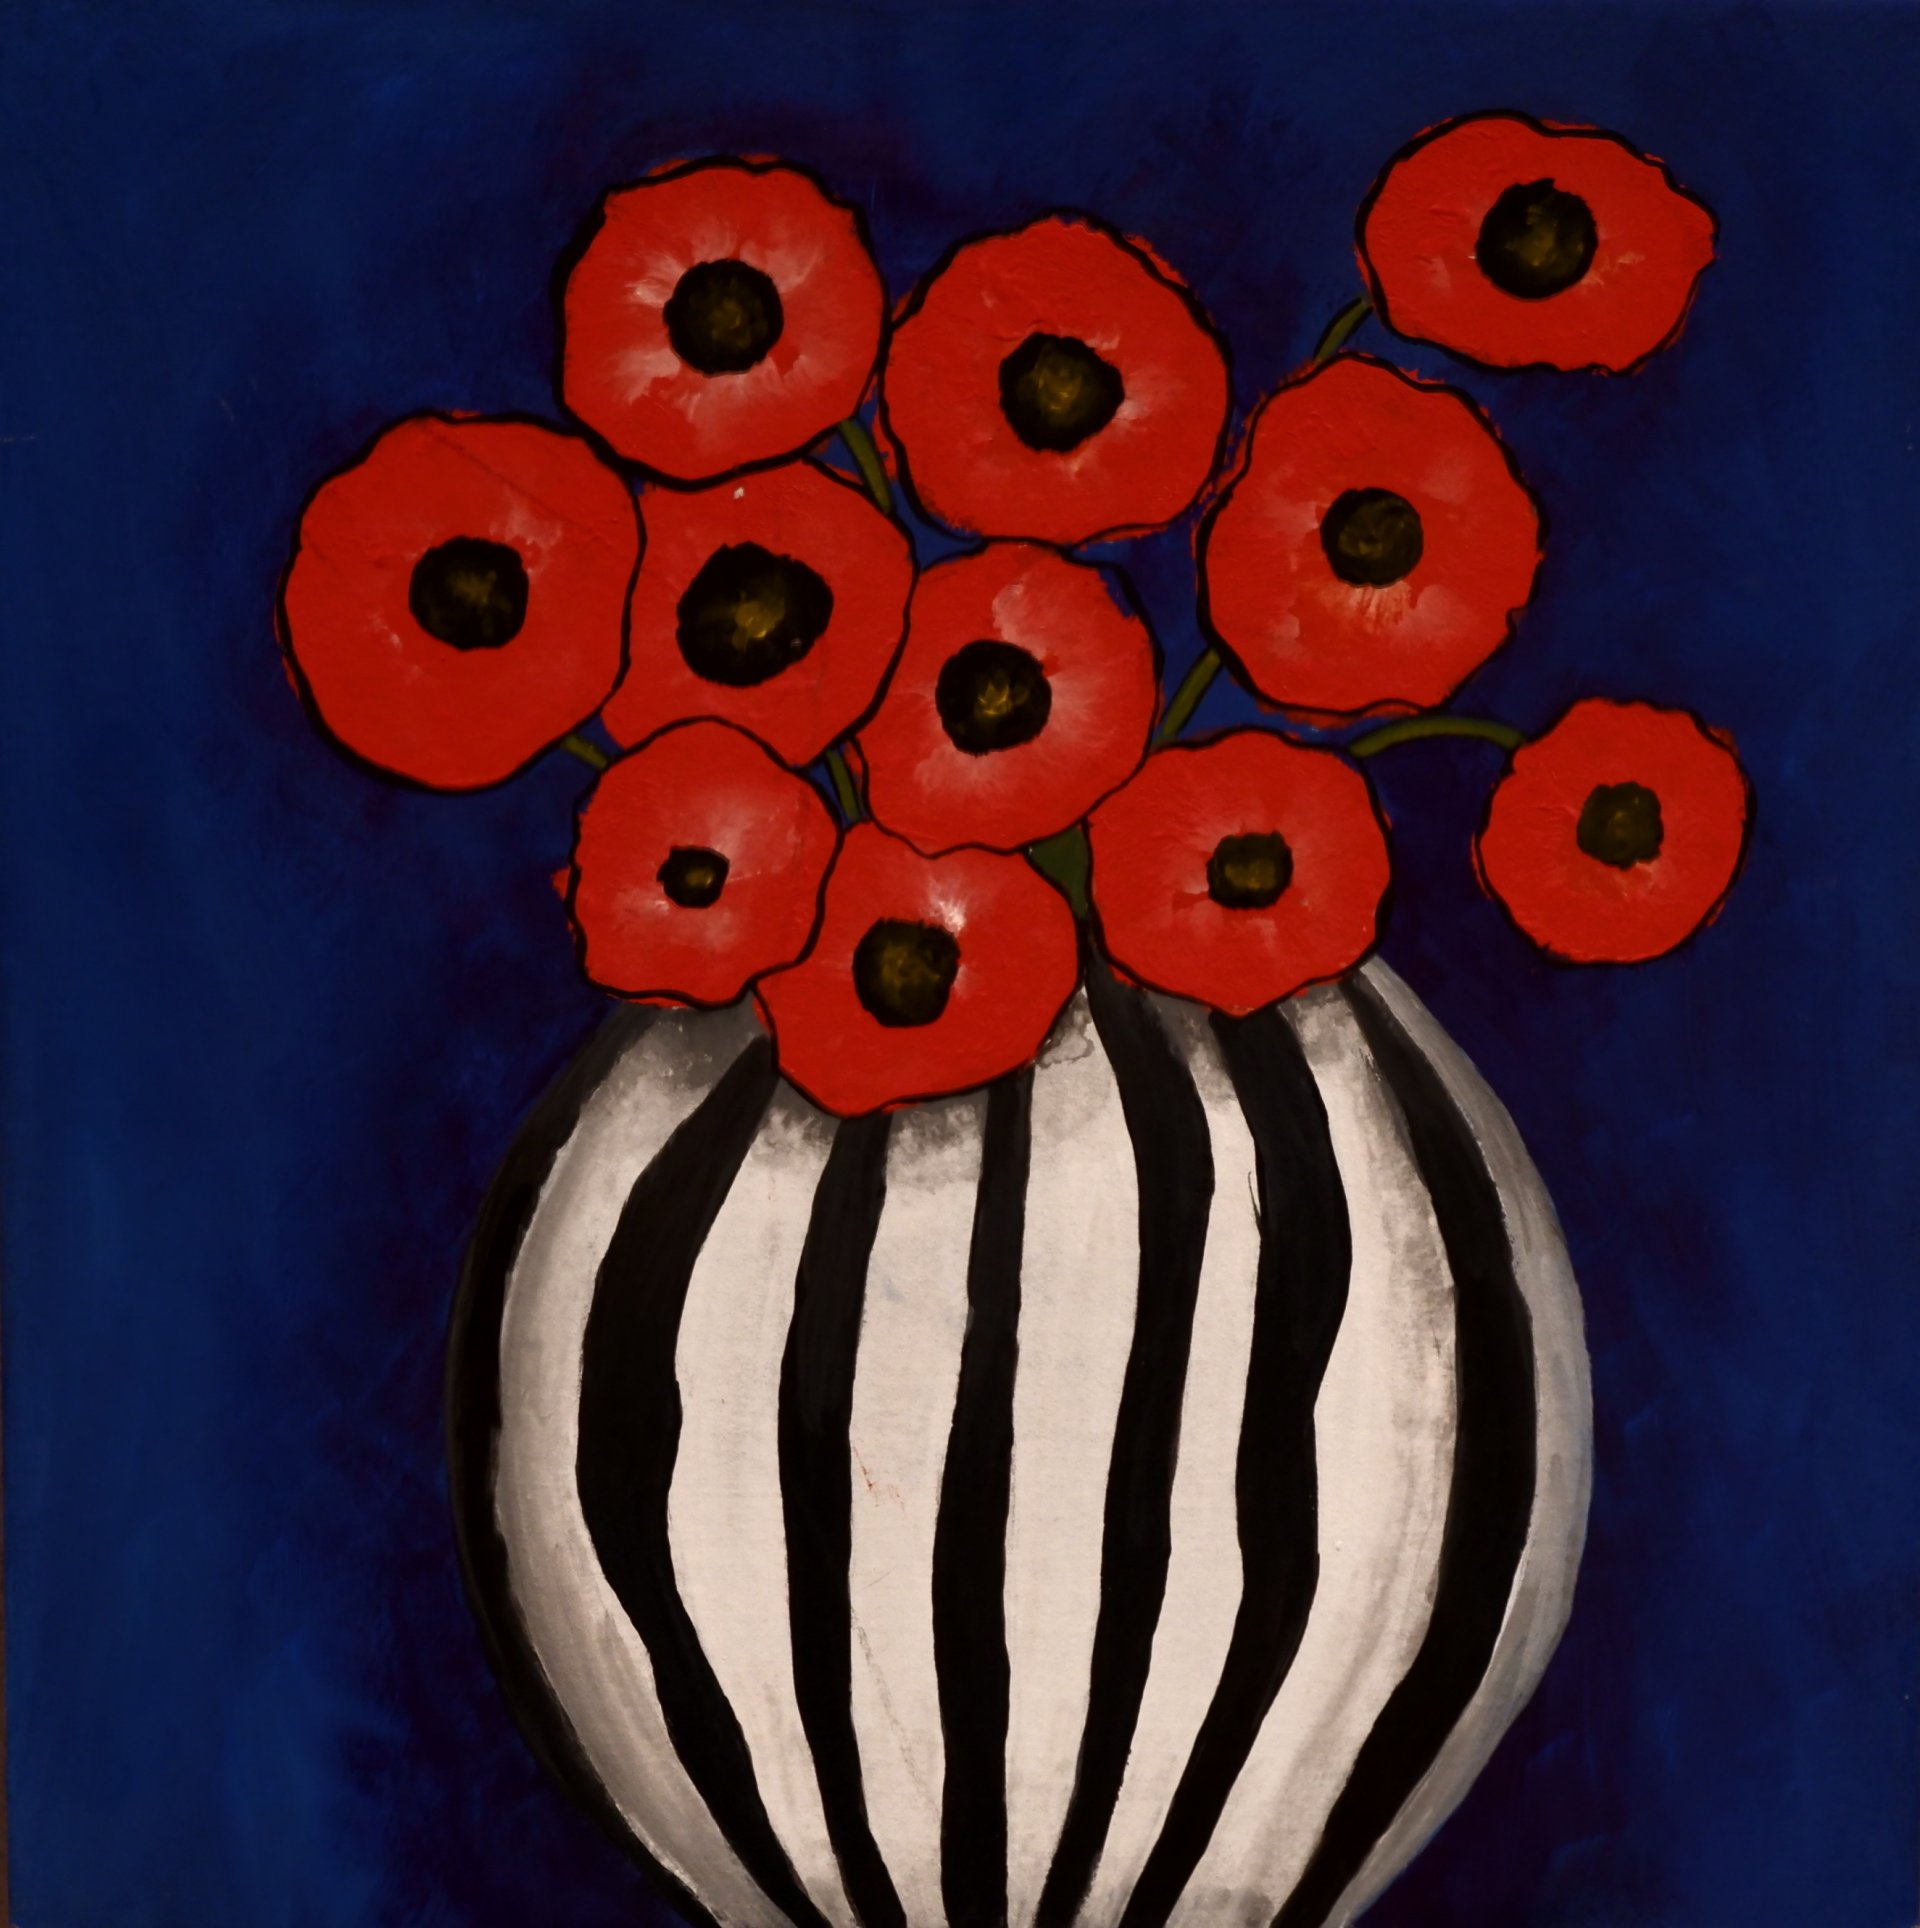 Poppies on a blue background